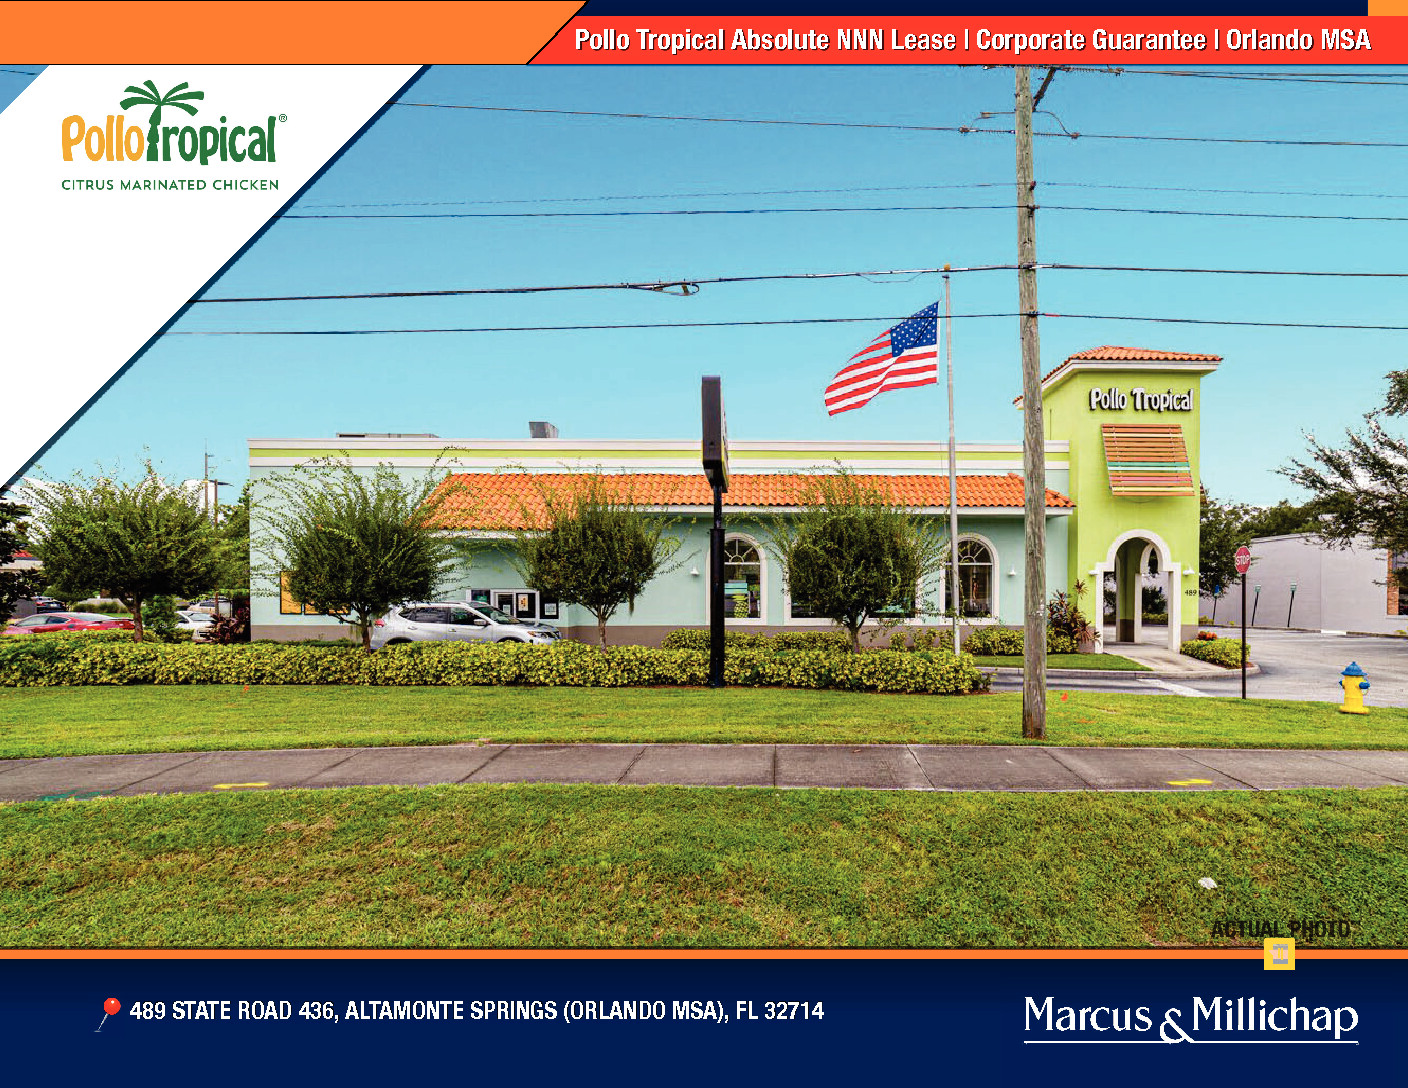 Just Listed! Pollo Tropical NNN Lease in Altamonte Springs, Florida